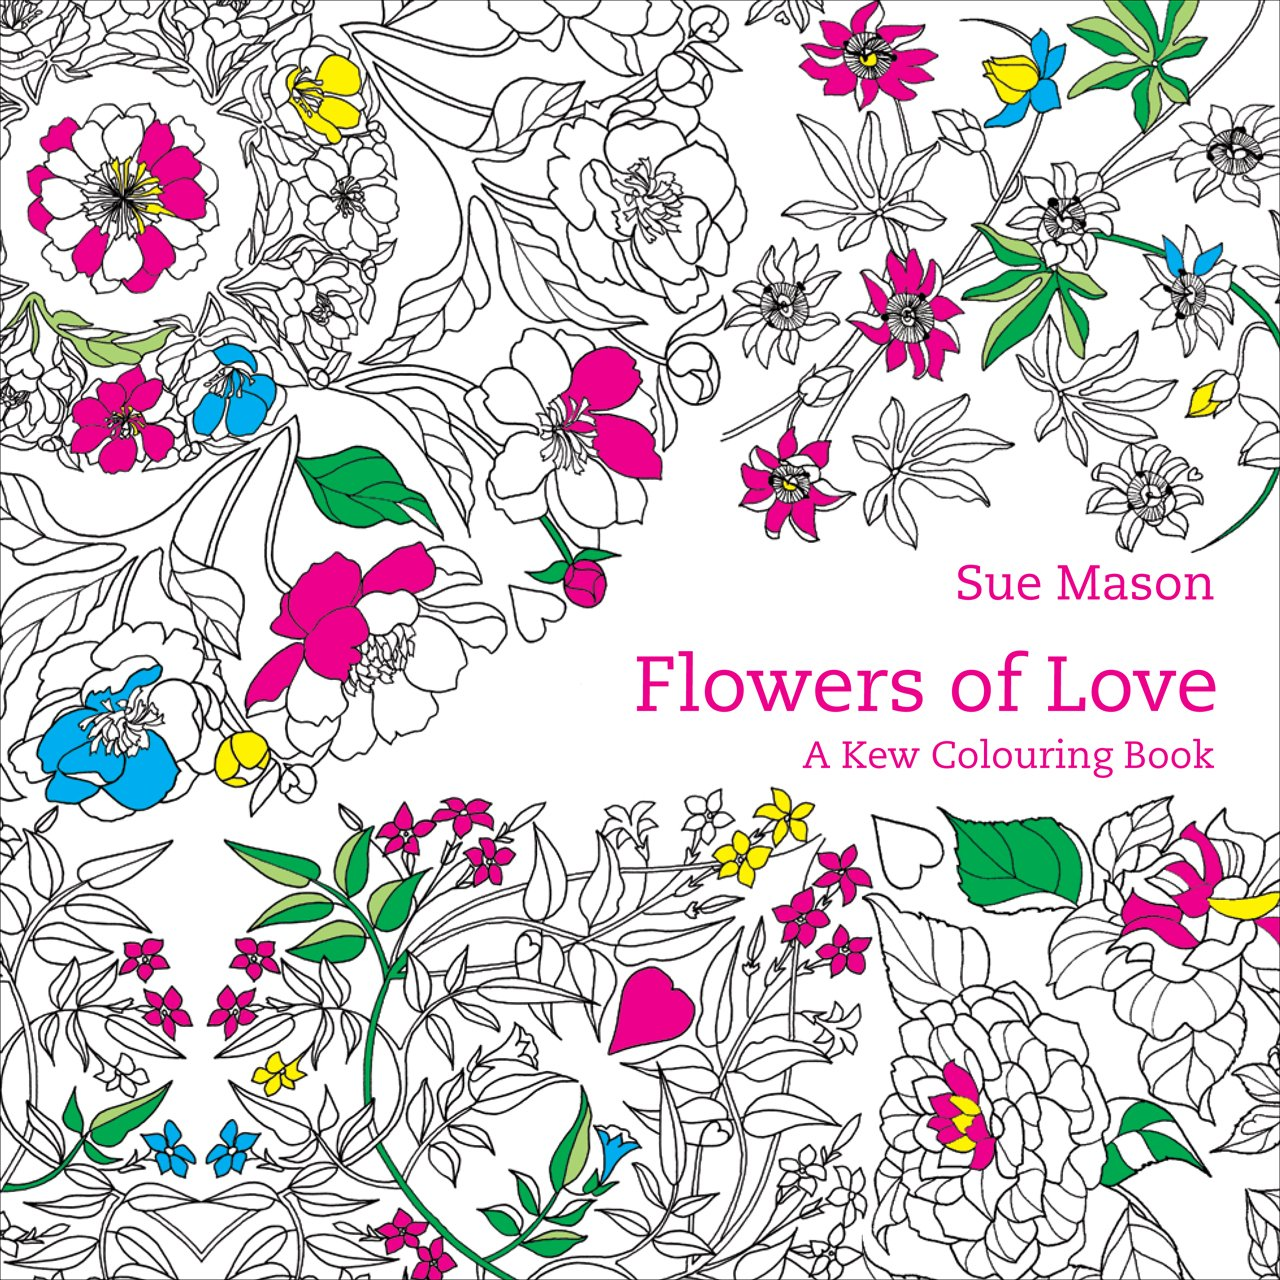 Flowers of Love: A Kew Colouring Book